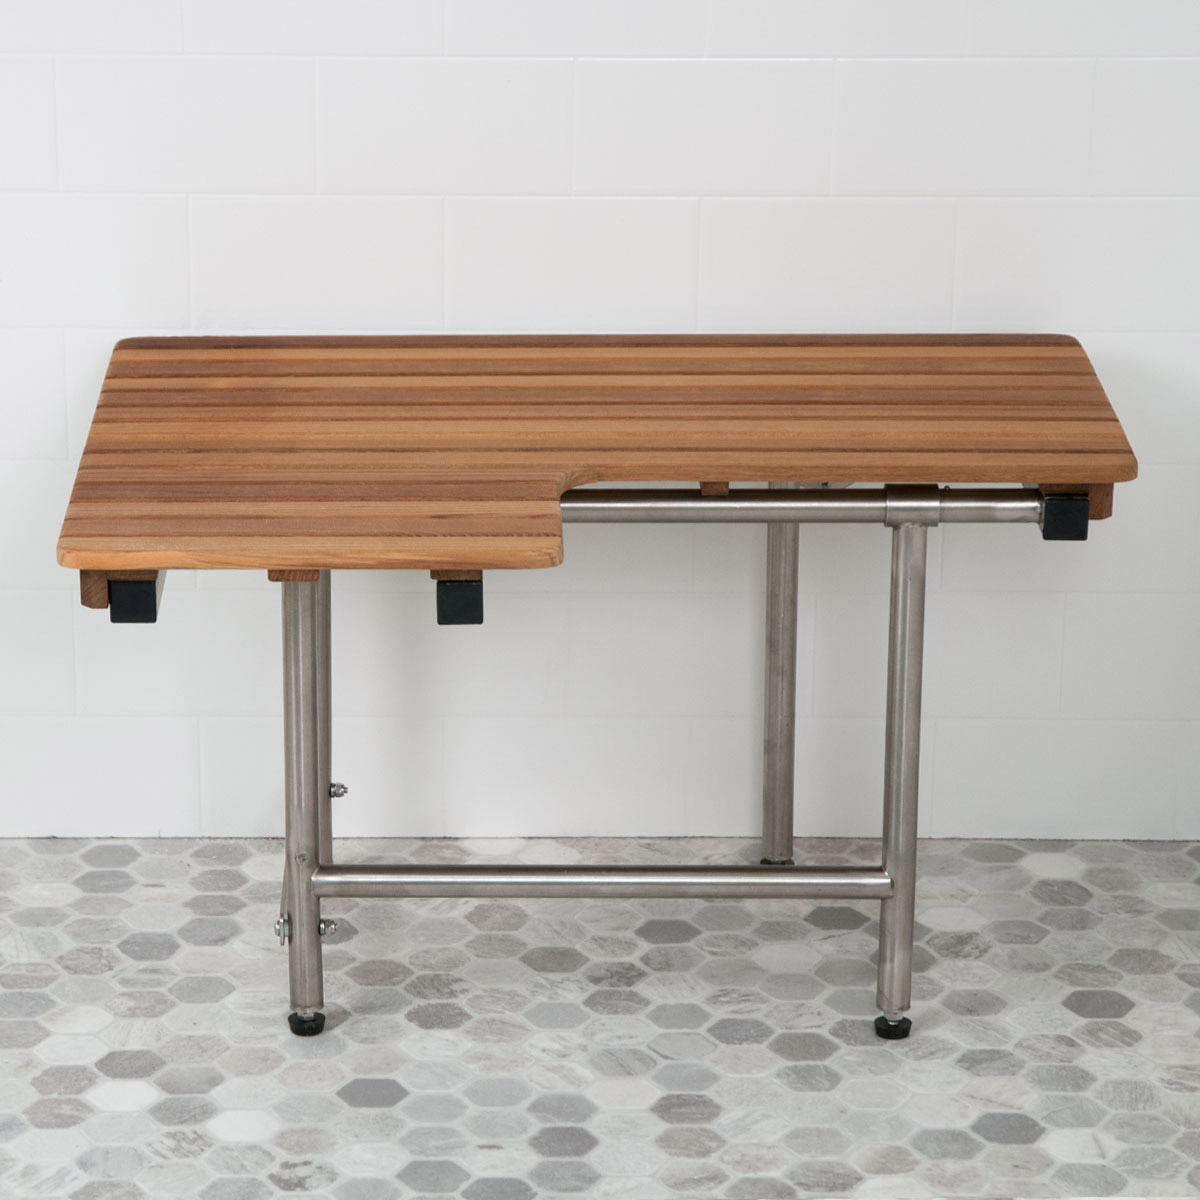 Discount Teak Wood Shower Benches On Sale Now